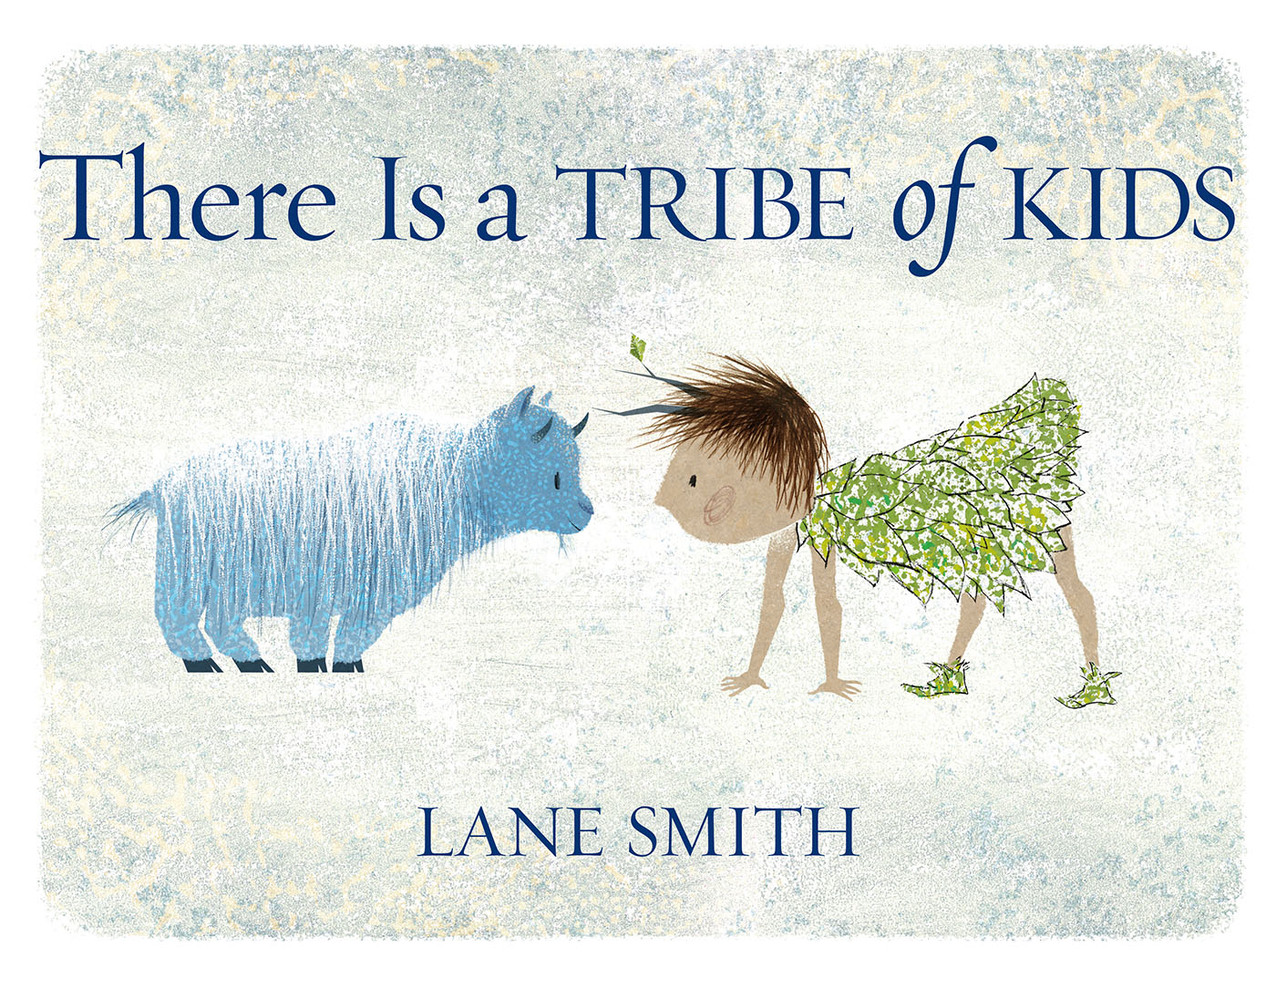 Lane Smith's new picture book: There Is a TRIBE of KIDS (plus a response to  Rosanne Parry)